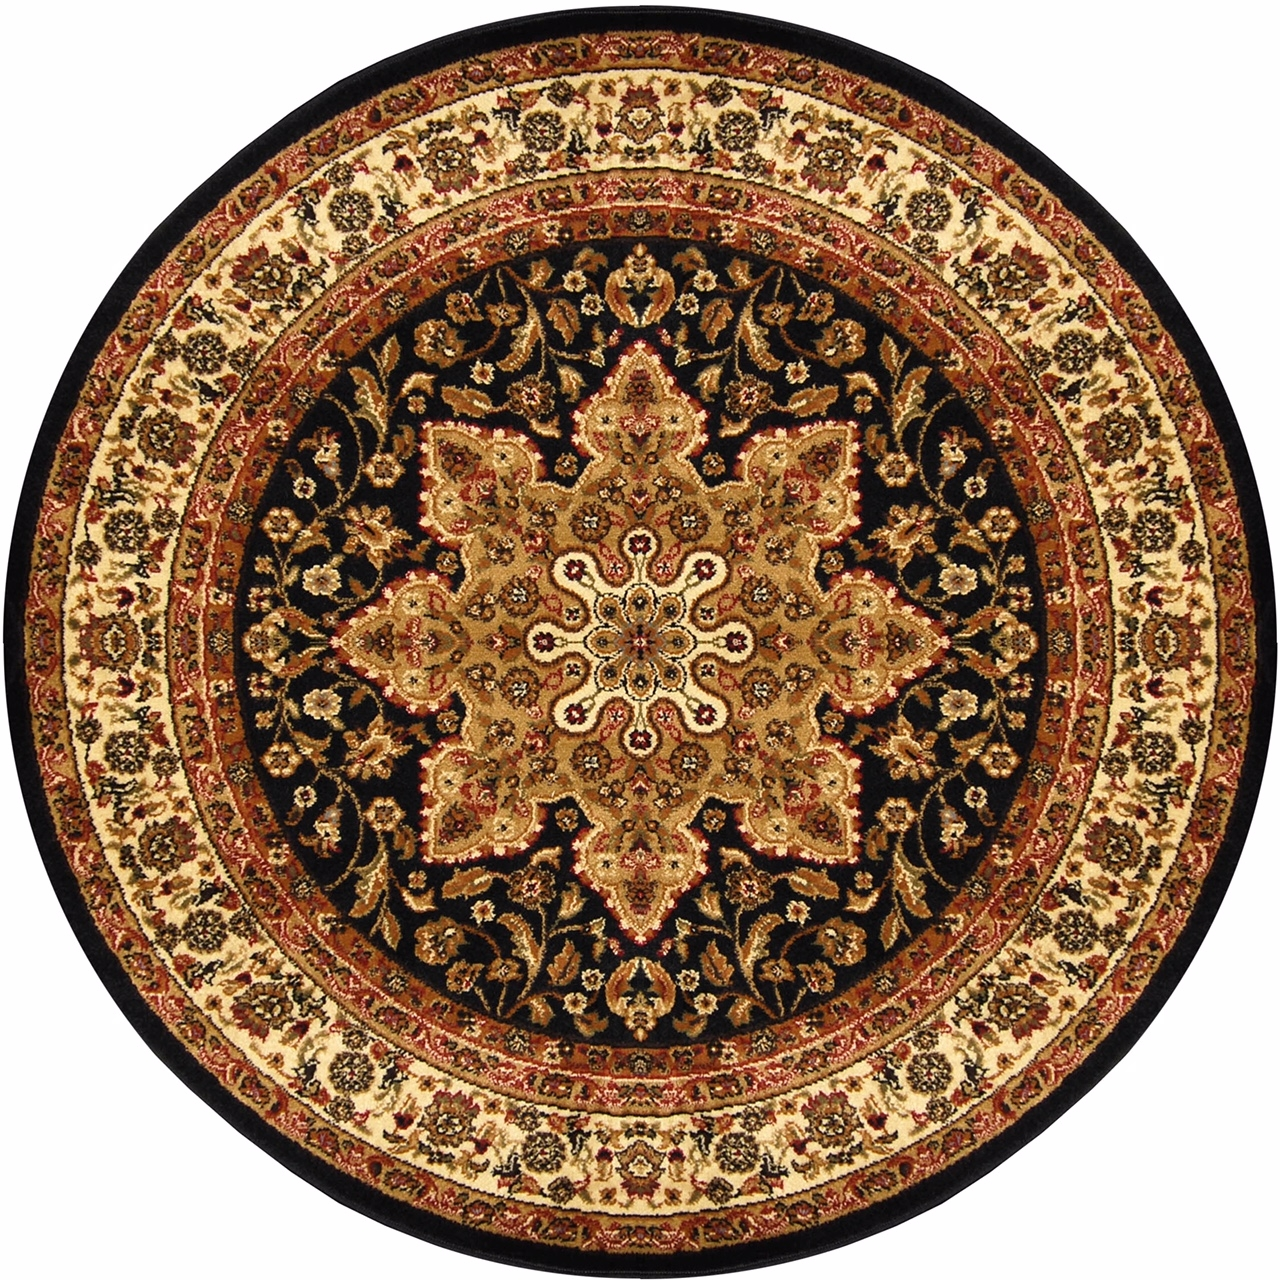 Traditional Round 5×5 Oriental Area Rug Persian Carpet Actual 5 Throughout Round Persian Rugs (Image 15 of 15)